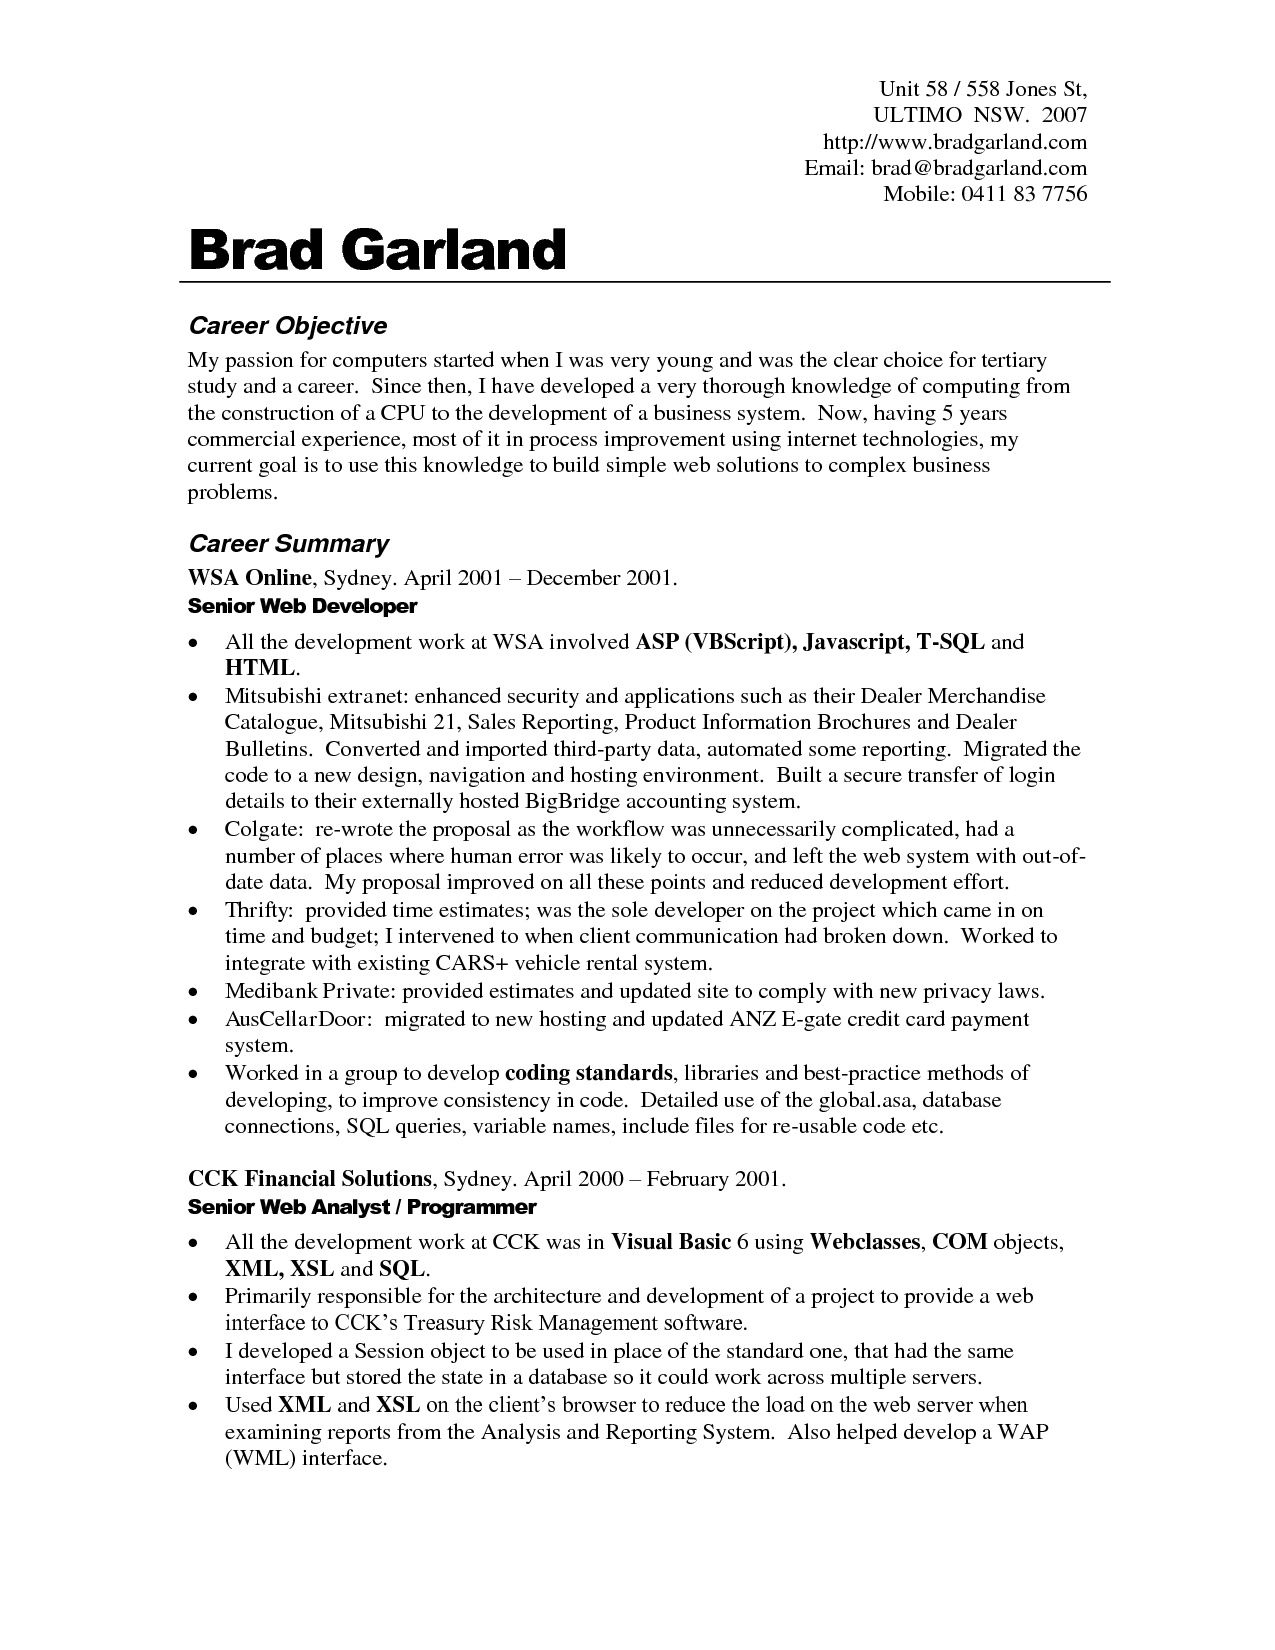 career objective resume examples for example your training goals and objectives rufoot resumes - Objective Resume Example